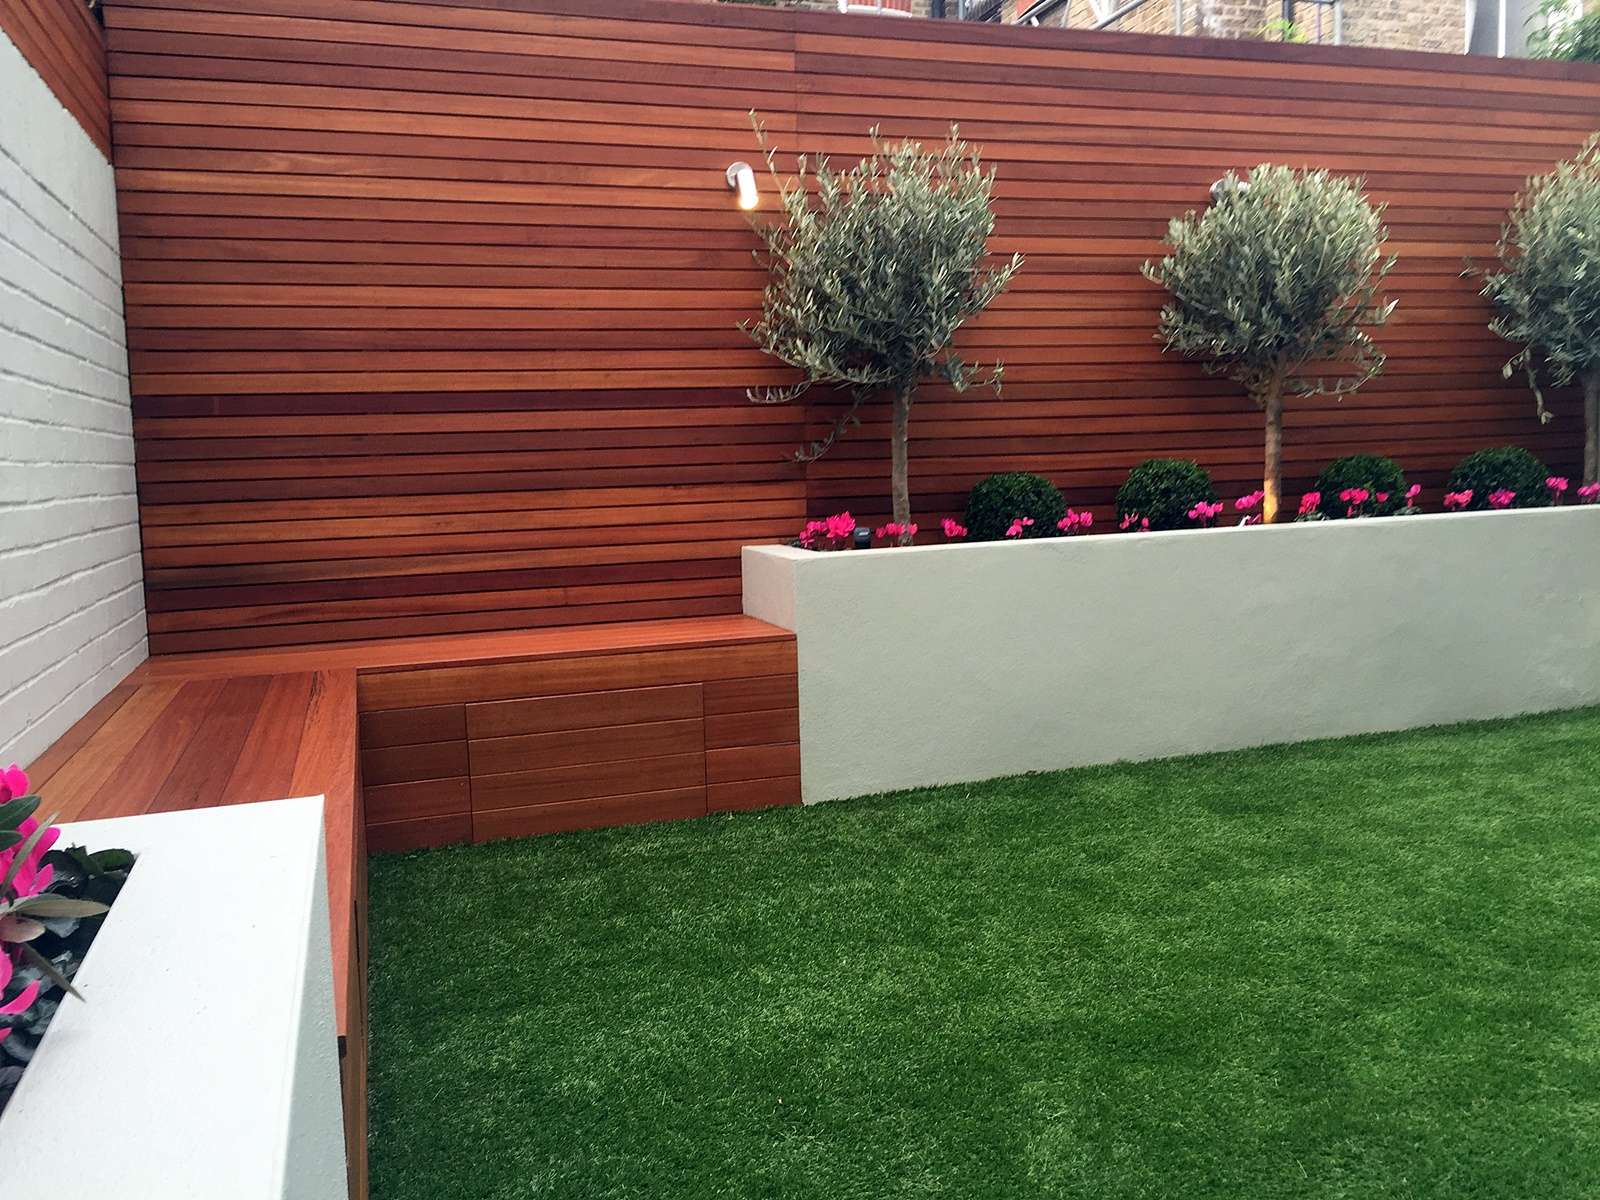 Designer london garden blog for Contemporary garden designs and ideas